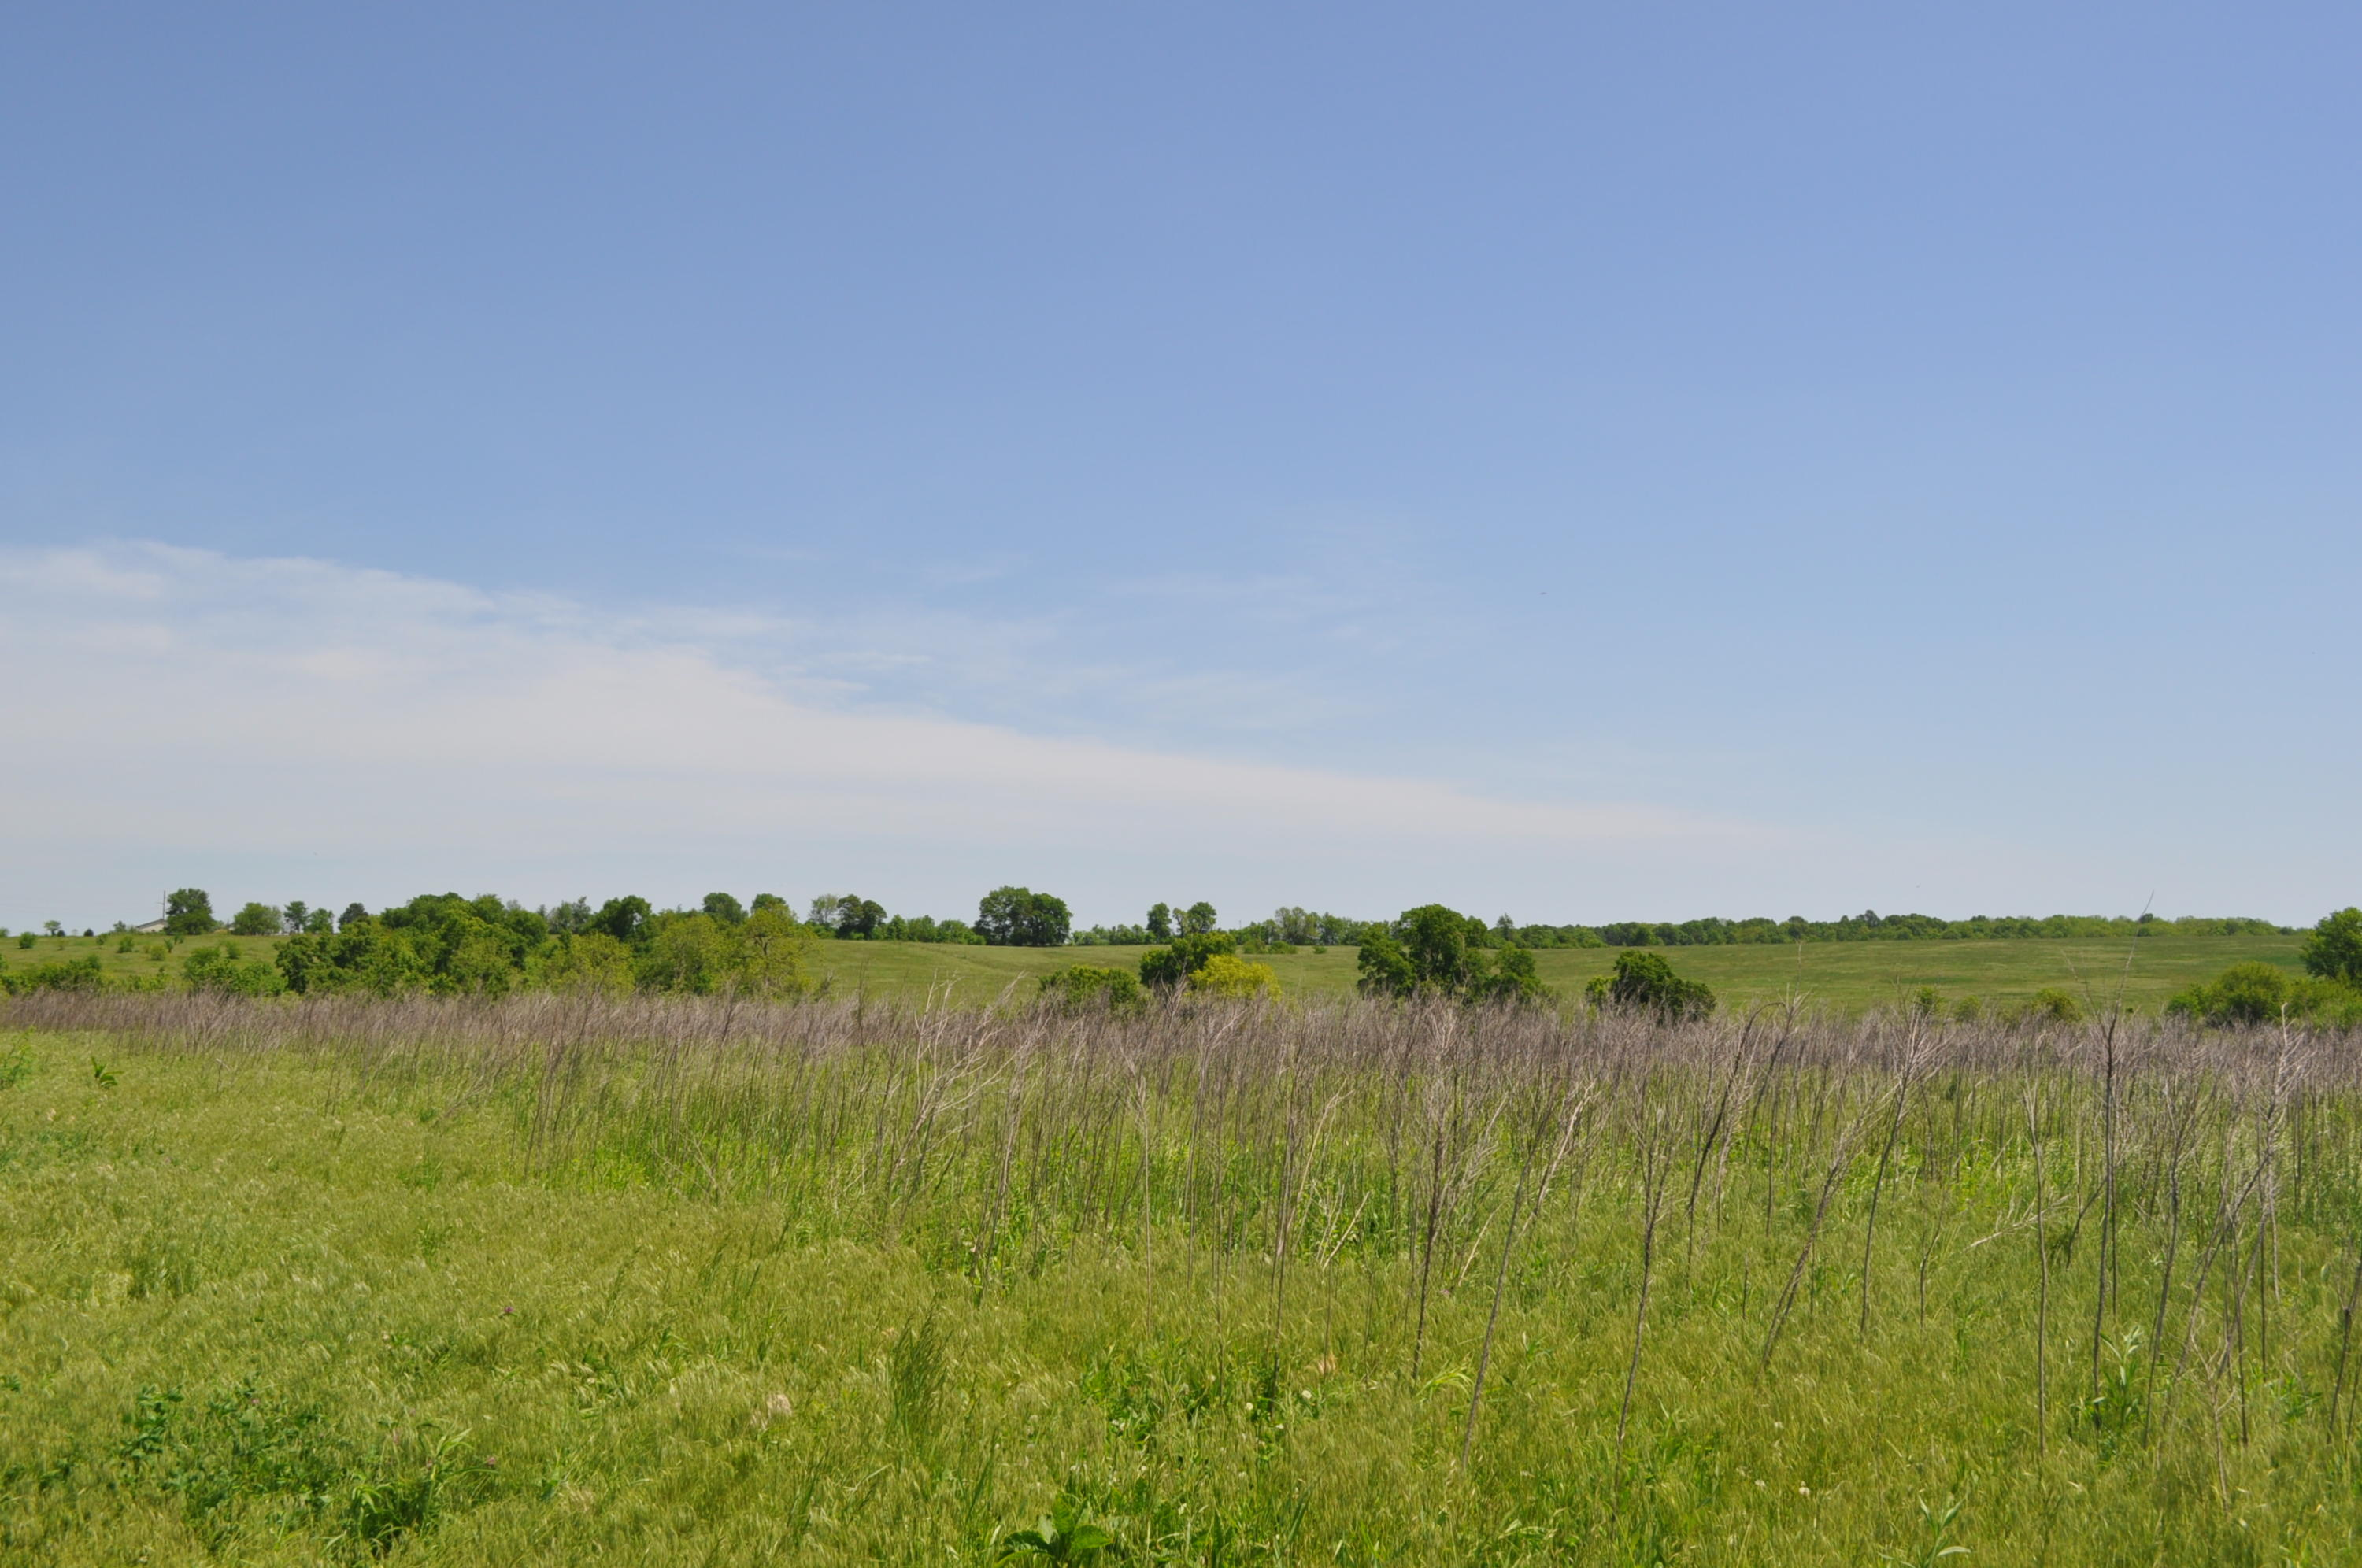 Tbd Terrell Valley Drive Tract Republic, MO 65738